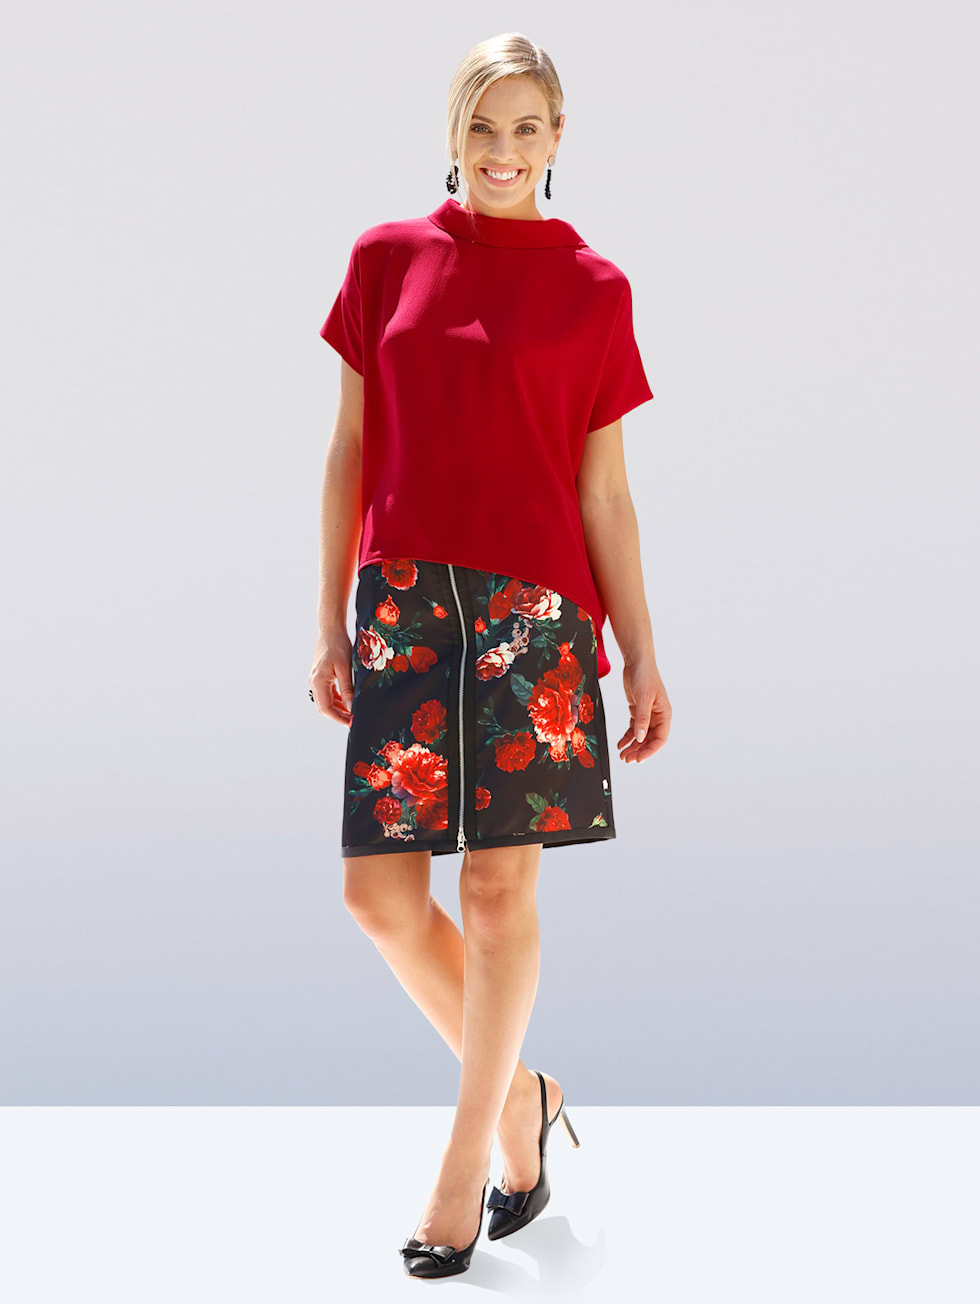 Home_FS21_KW8_10_Outfitteaser_Trendoutfit_Floral